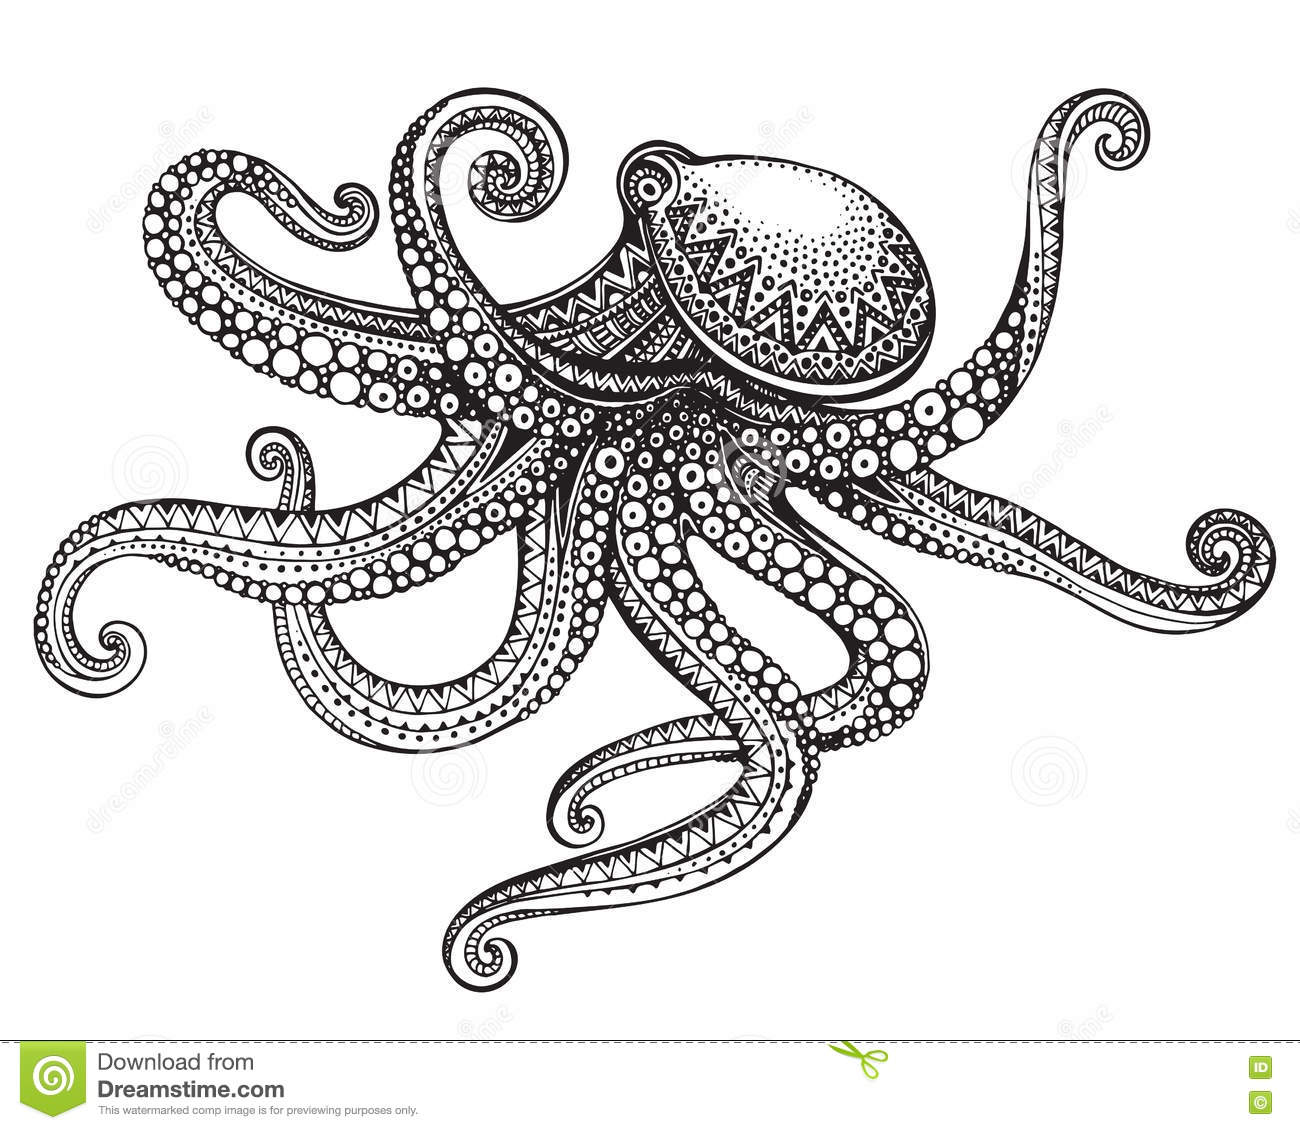 Hand Drawn Octopus In Graphic Ornate Style Stock Vector